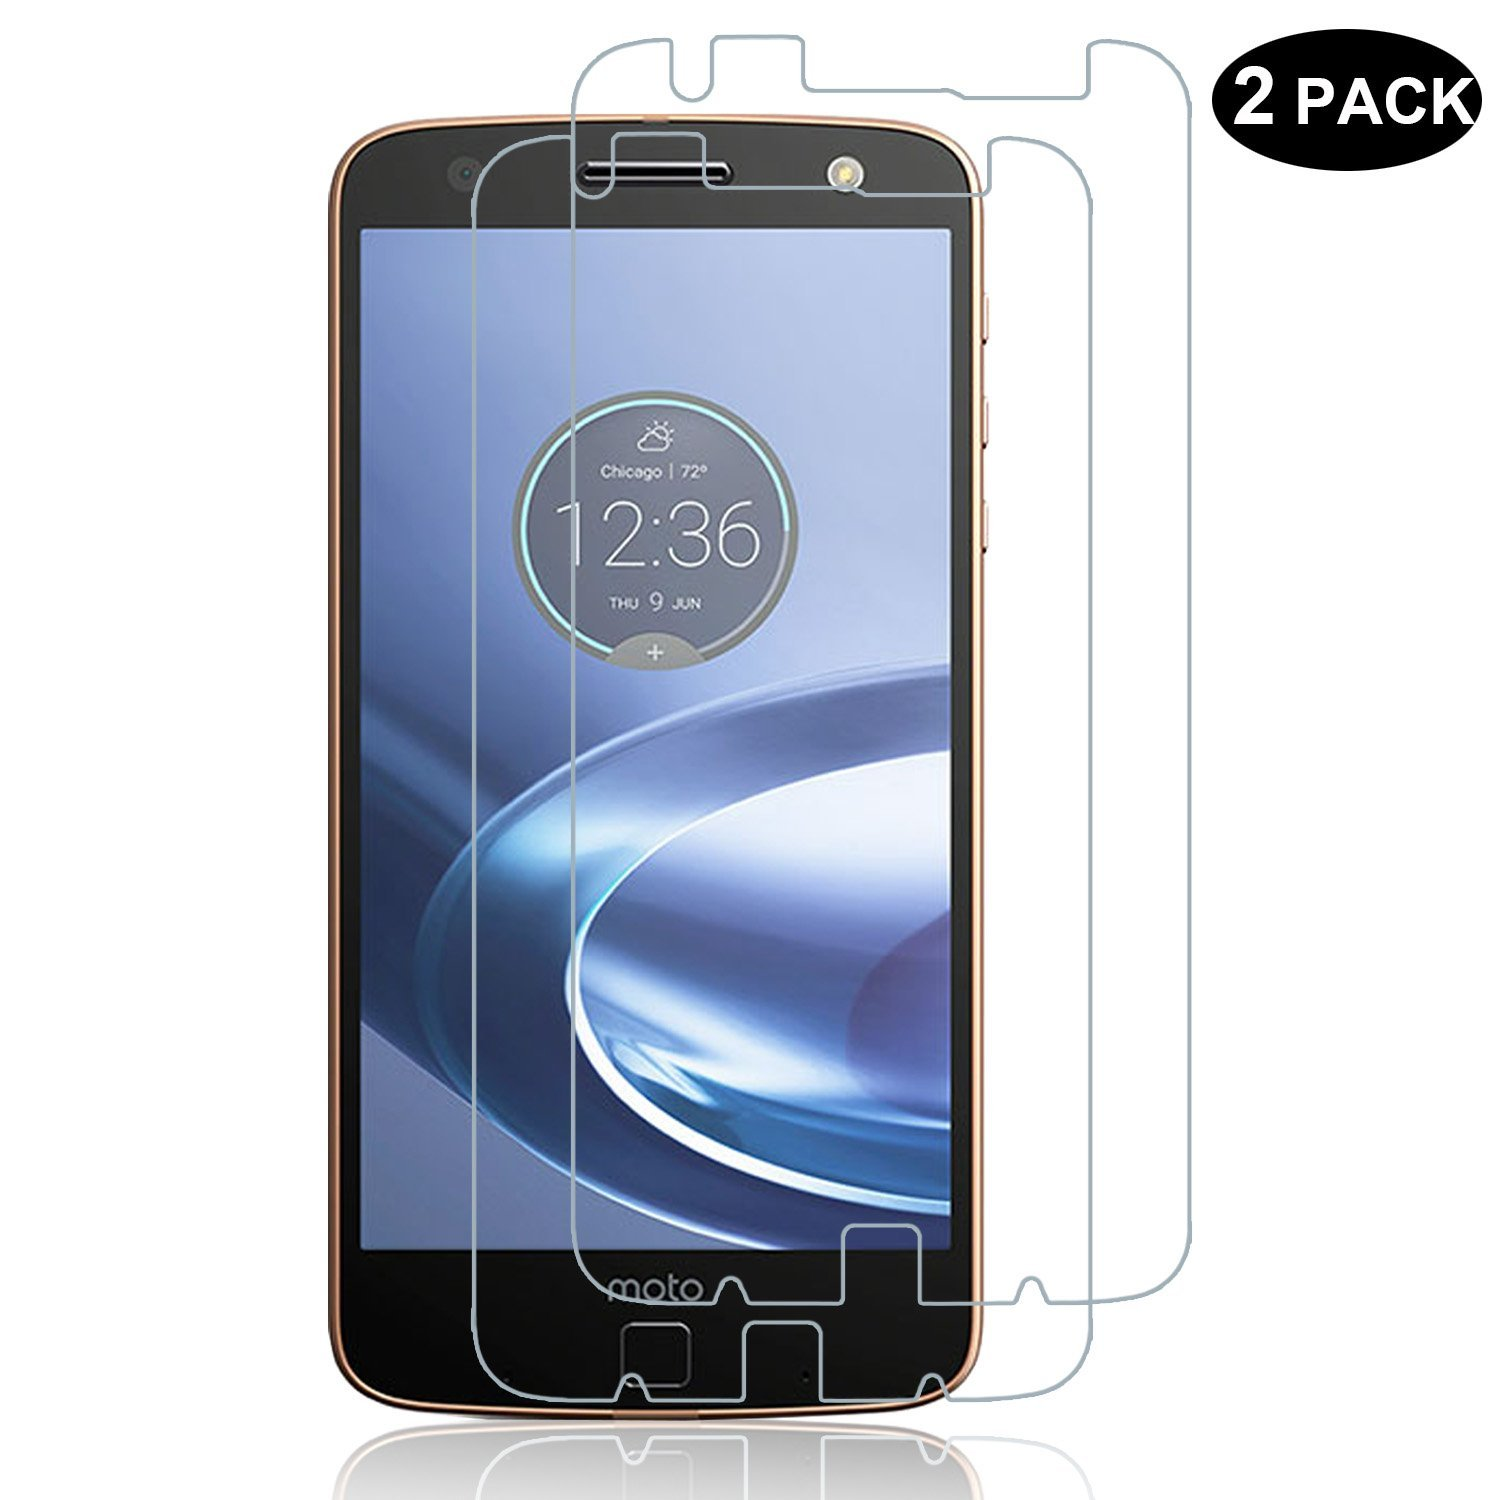 RBEIK Motorola Moto Z FORCE Screen Protector Glass, Premium 9H Tempered Glass Screen Protector for Moto Z FORCE Droid Edition [Scratch-resistant] [Anti-Fingerprint] [Bubble Free]